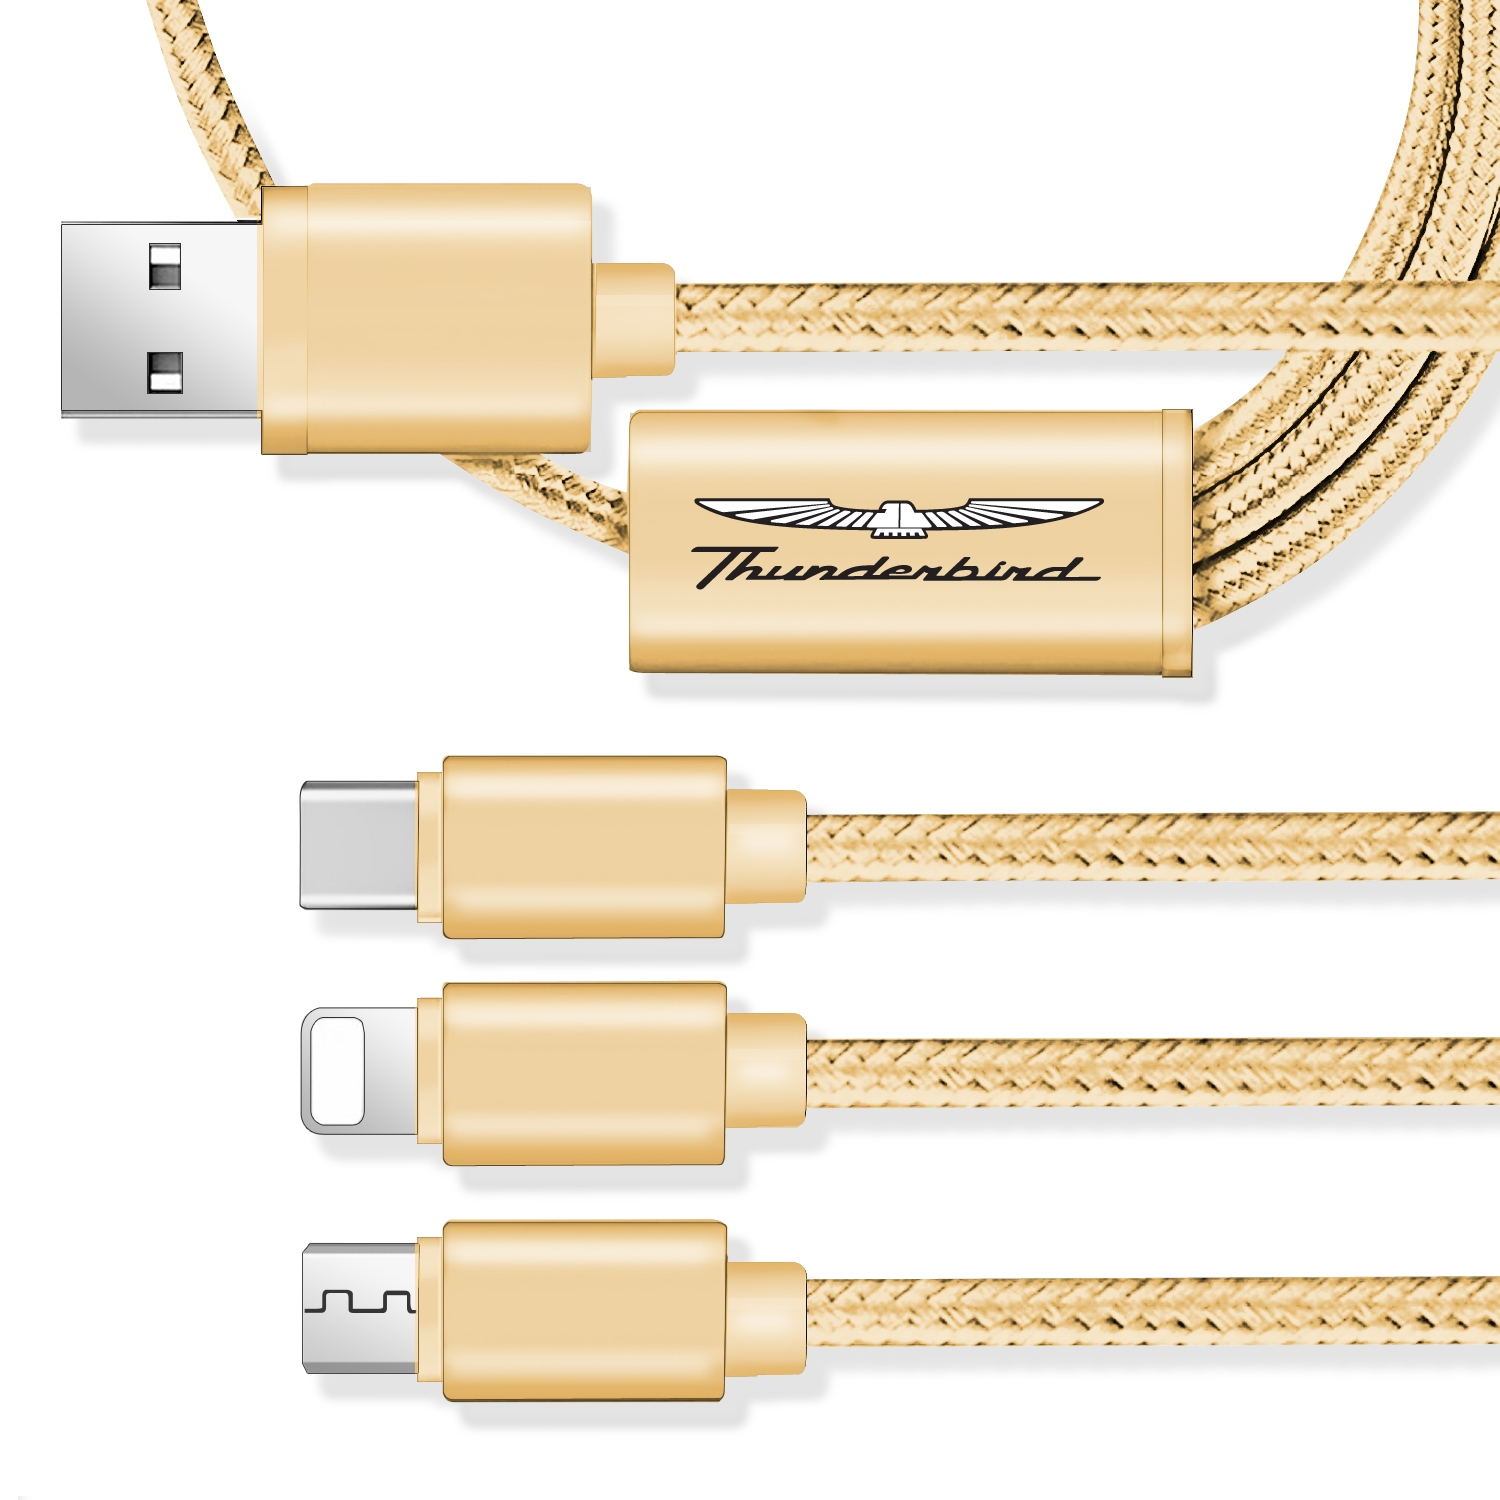 Ford Thunderbird 3 in 1 Golden 4 Ft Premium Multi Charging Cord USB Cable